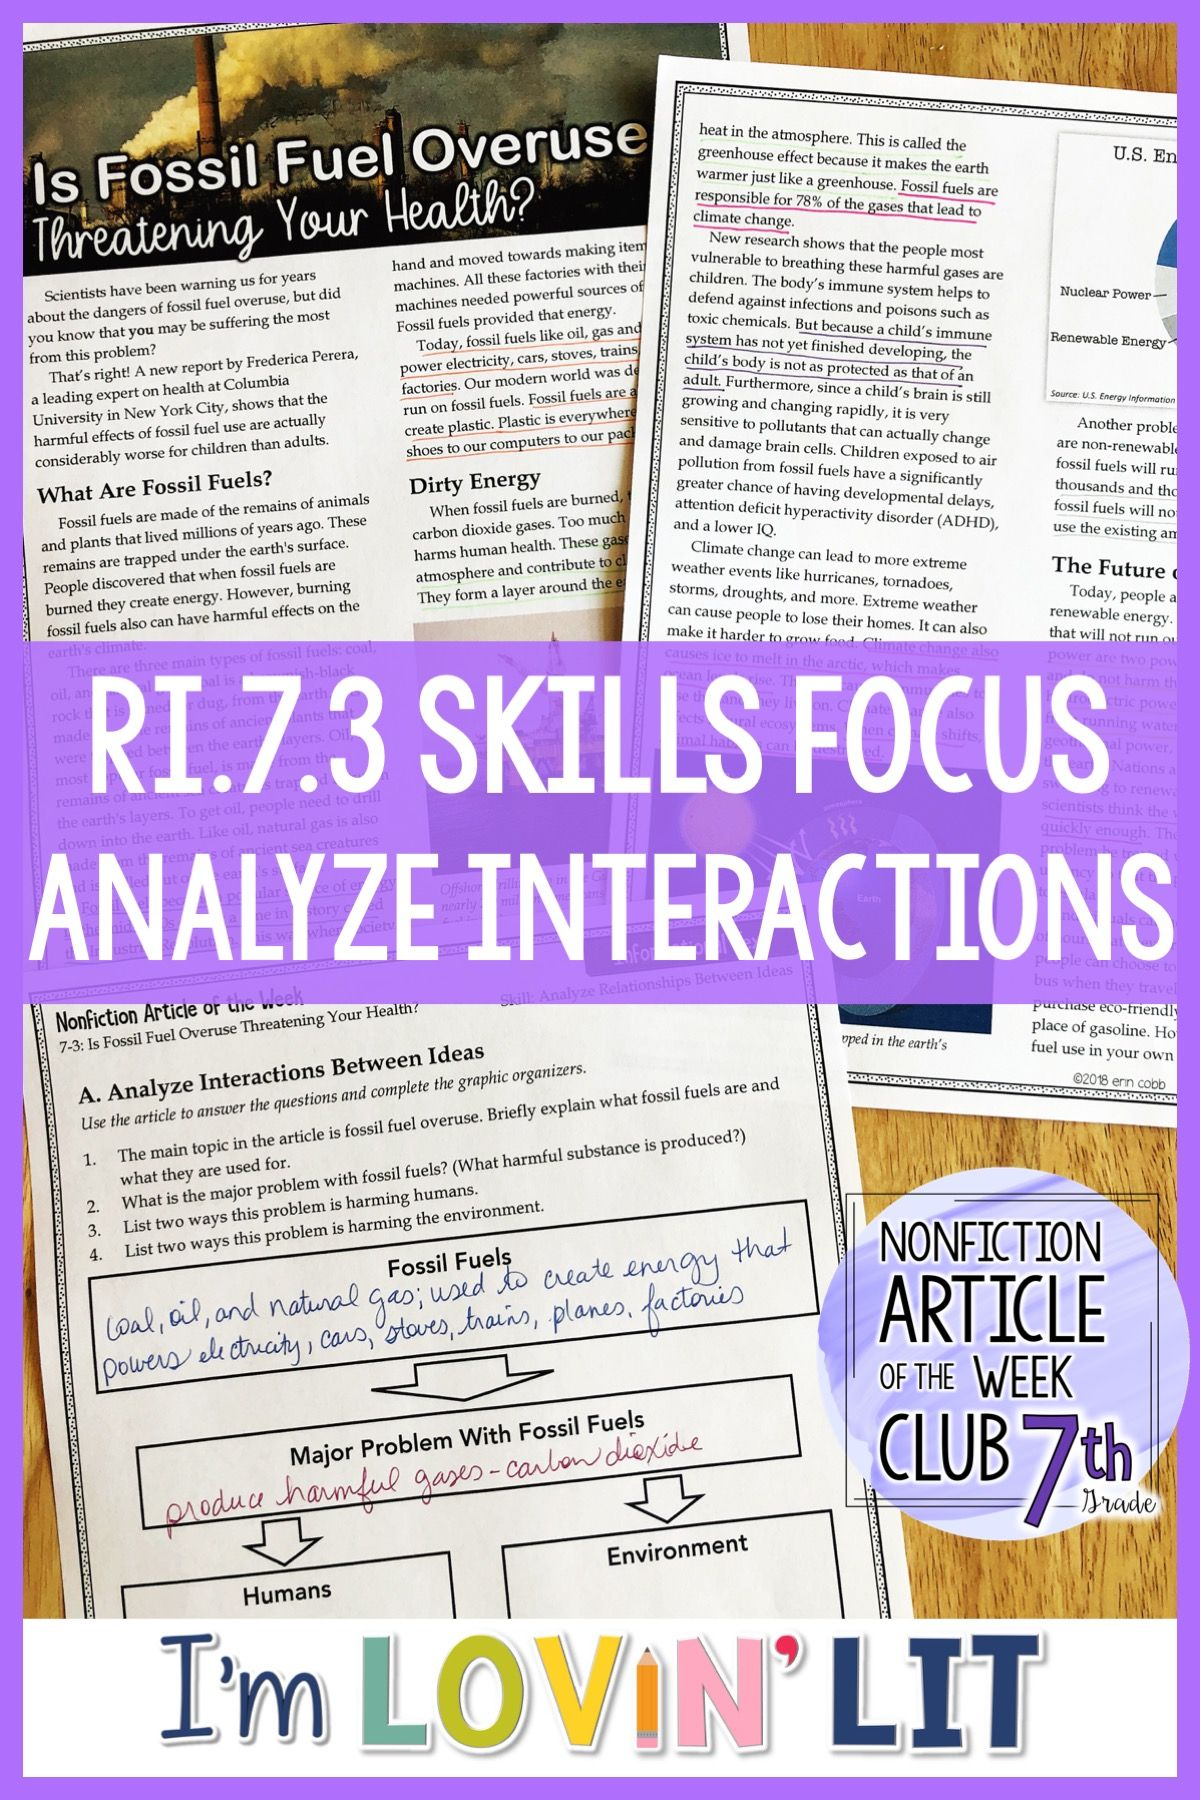 Analyze Relationships In A Text Ri73 Fossil Fuel Overuse Article Electricity Is Produced From Coal Academic Writing Task 1 Ielts Interactions Teach This Reading Informational Skill For 7th Grade With Nonfiction